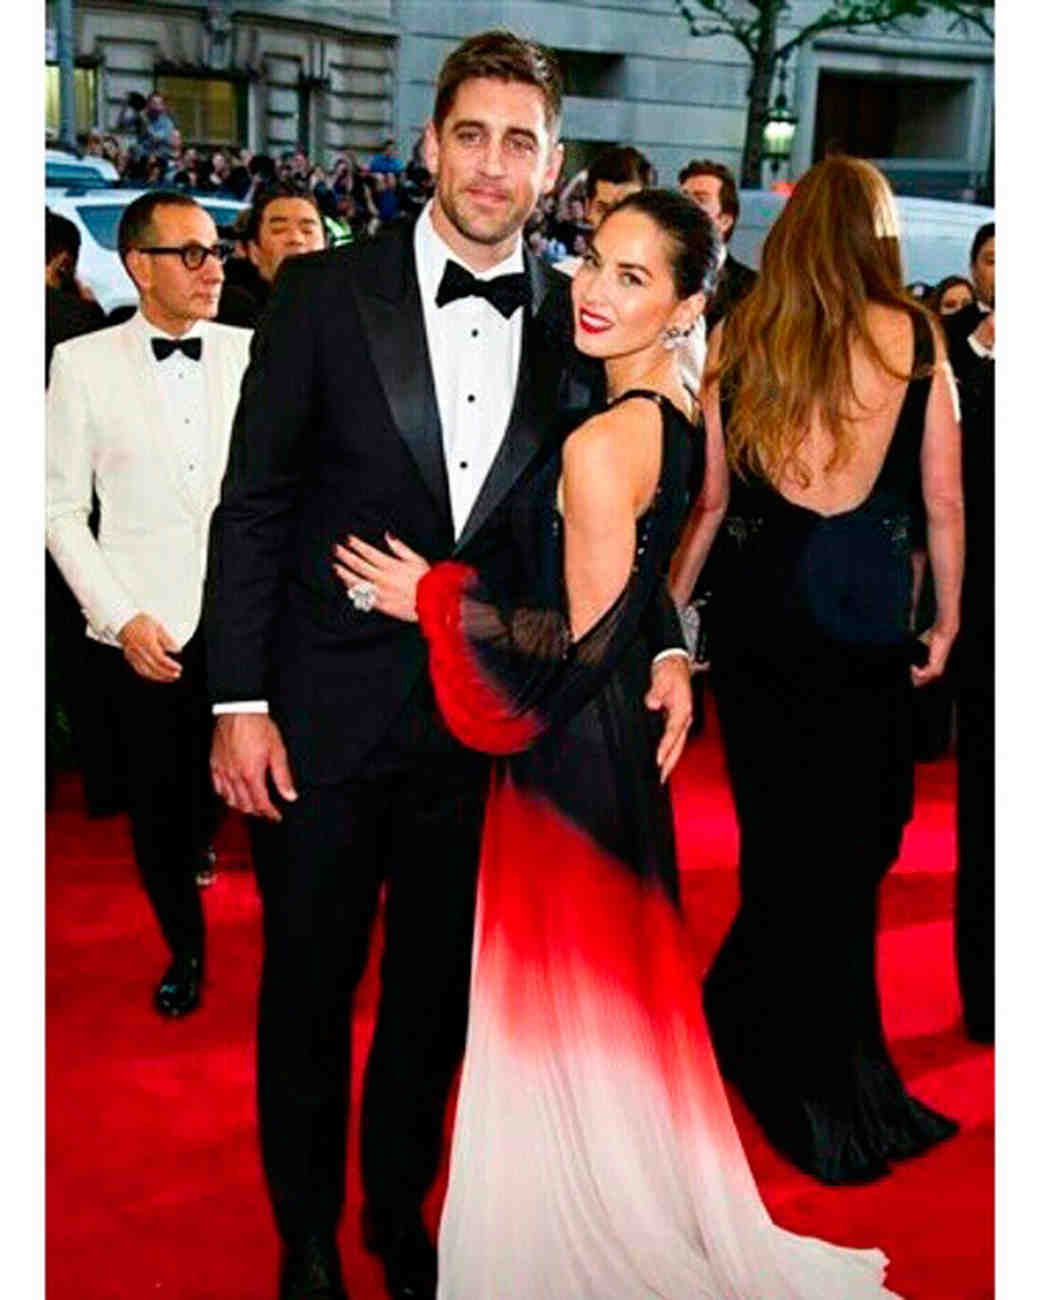 celebrity-couples-we-hope-get-engaged-olivia-munn-aaron-rodgers-1215.jpeg